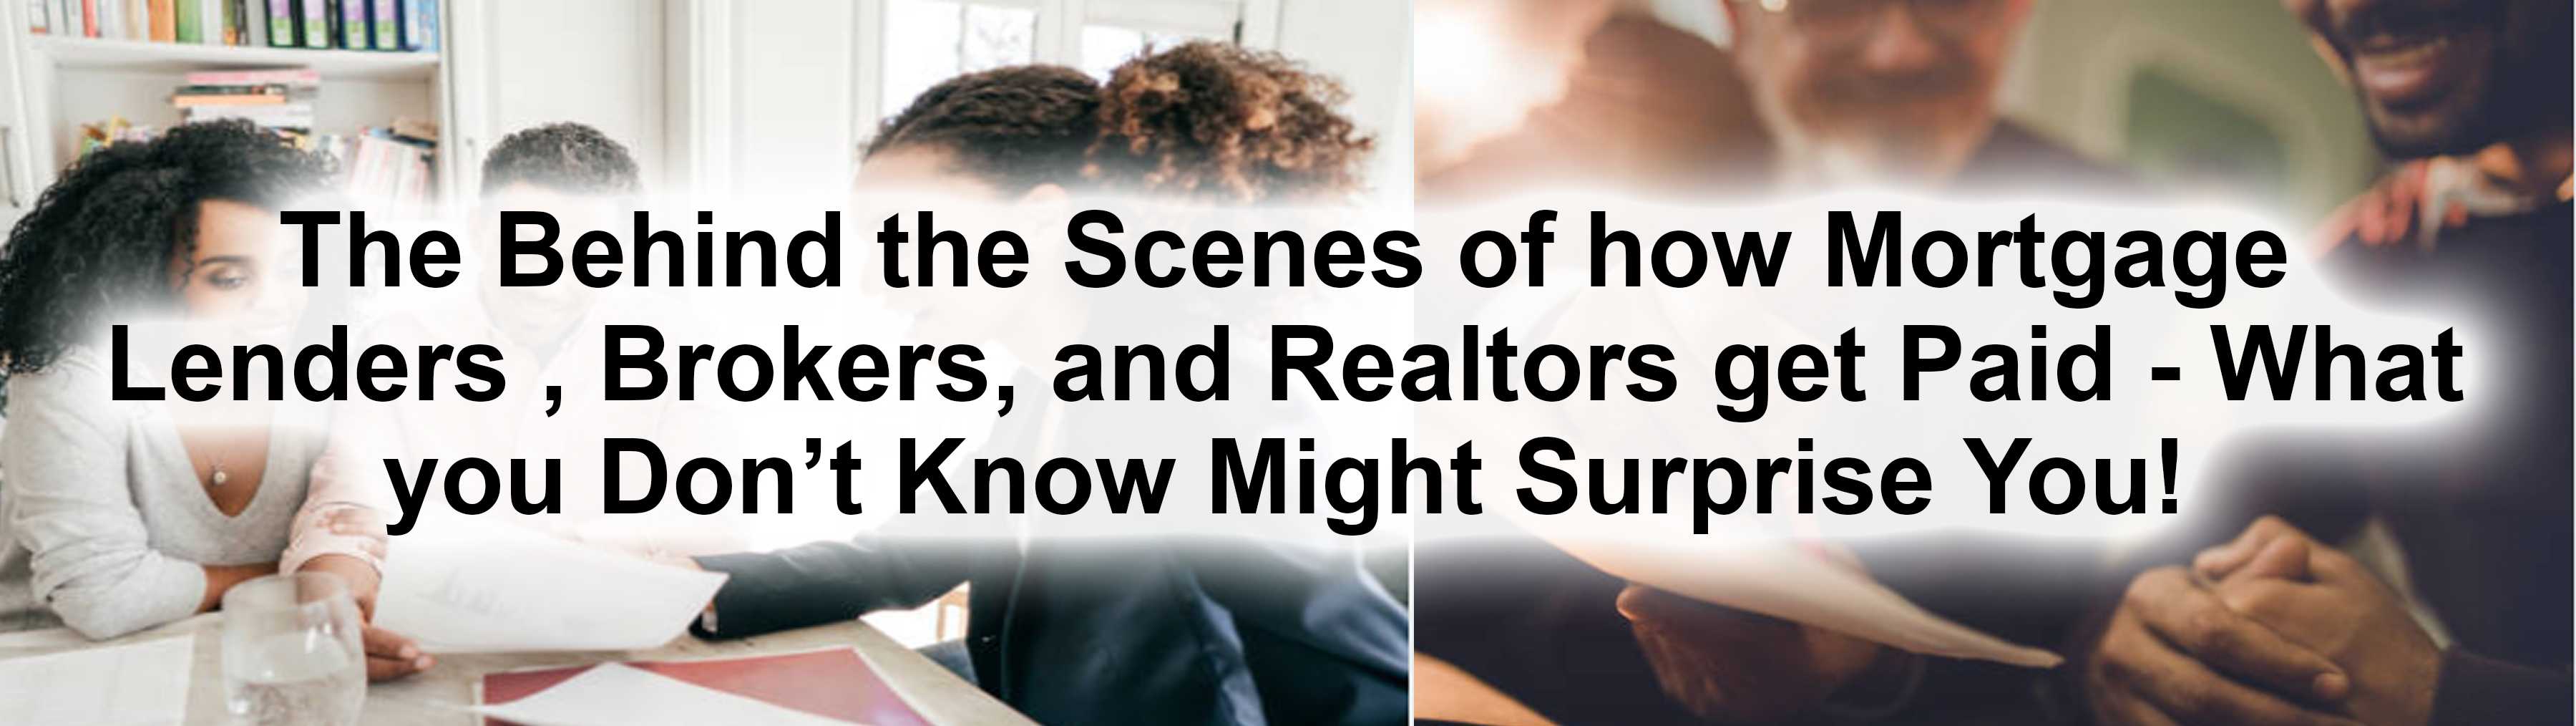 The Behind the Scenes of how Mortgage Lenders , Brokers, and Realtors get Paid – What you Don't Know Might Surprise You!